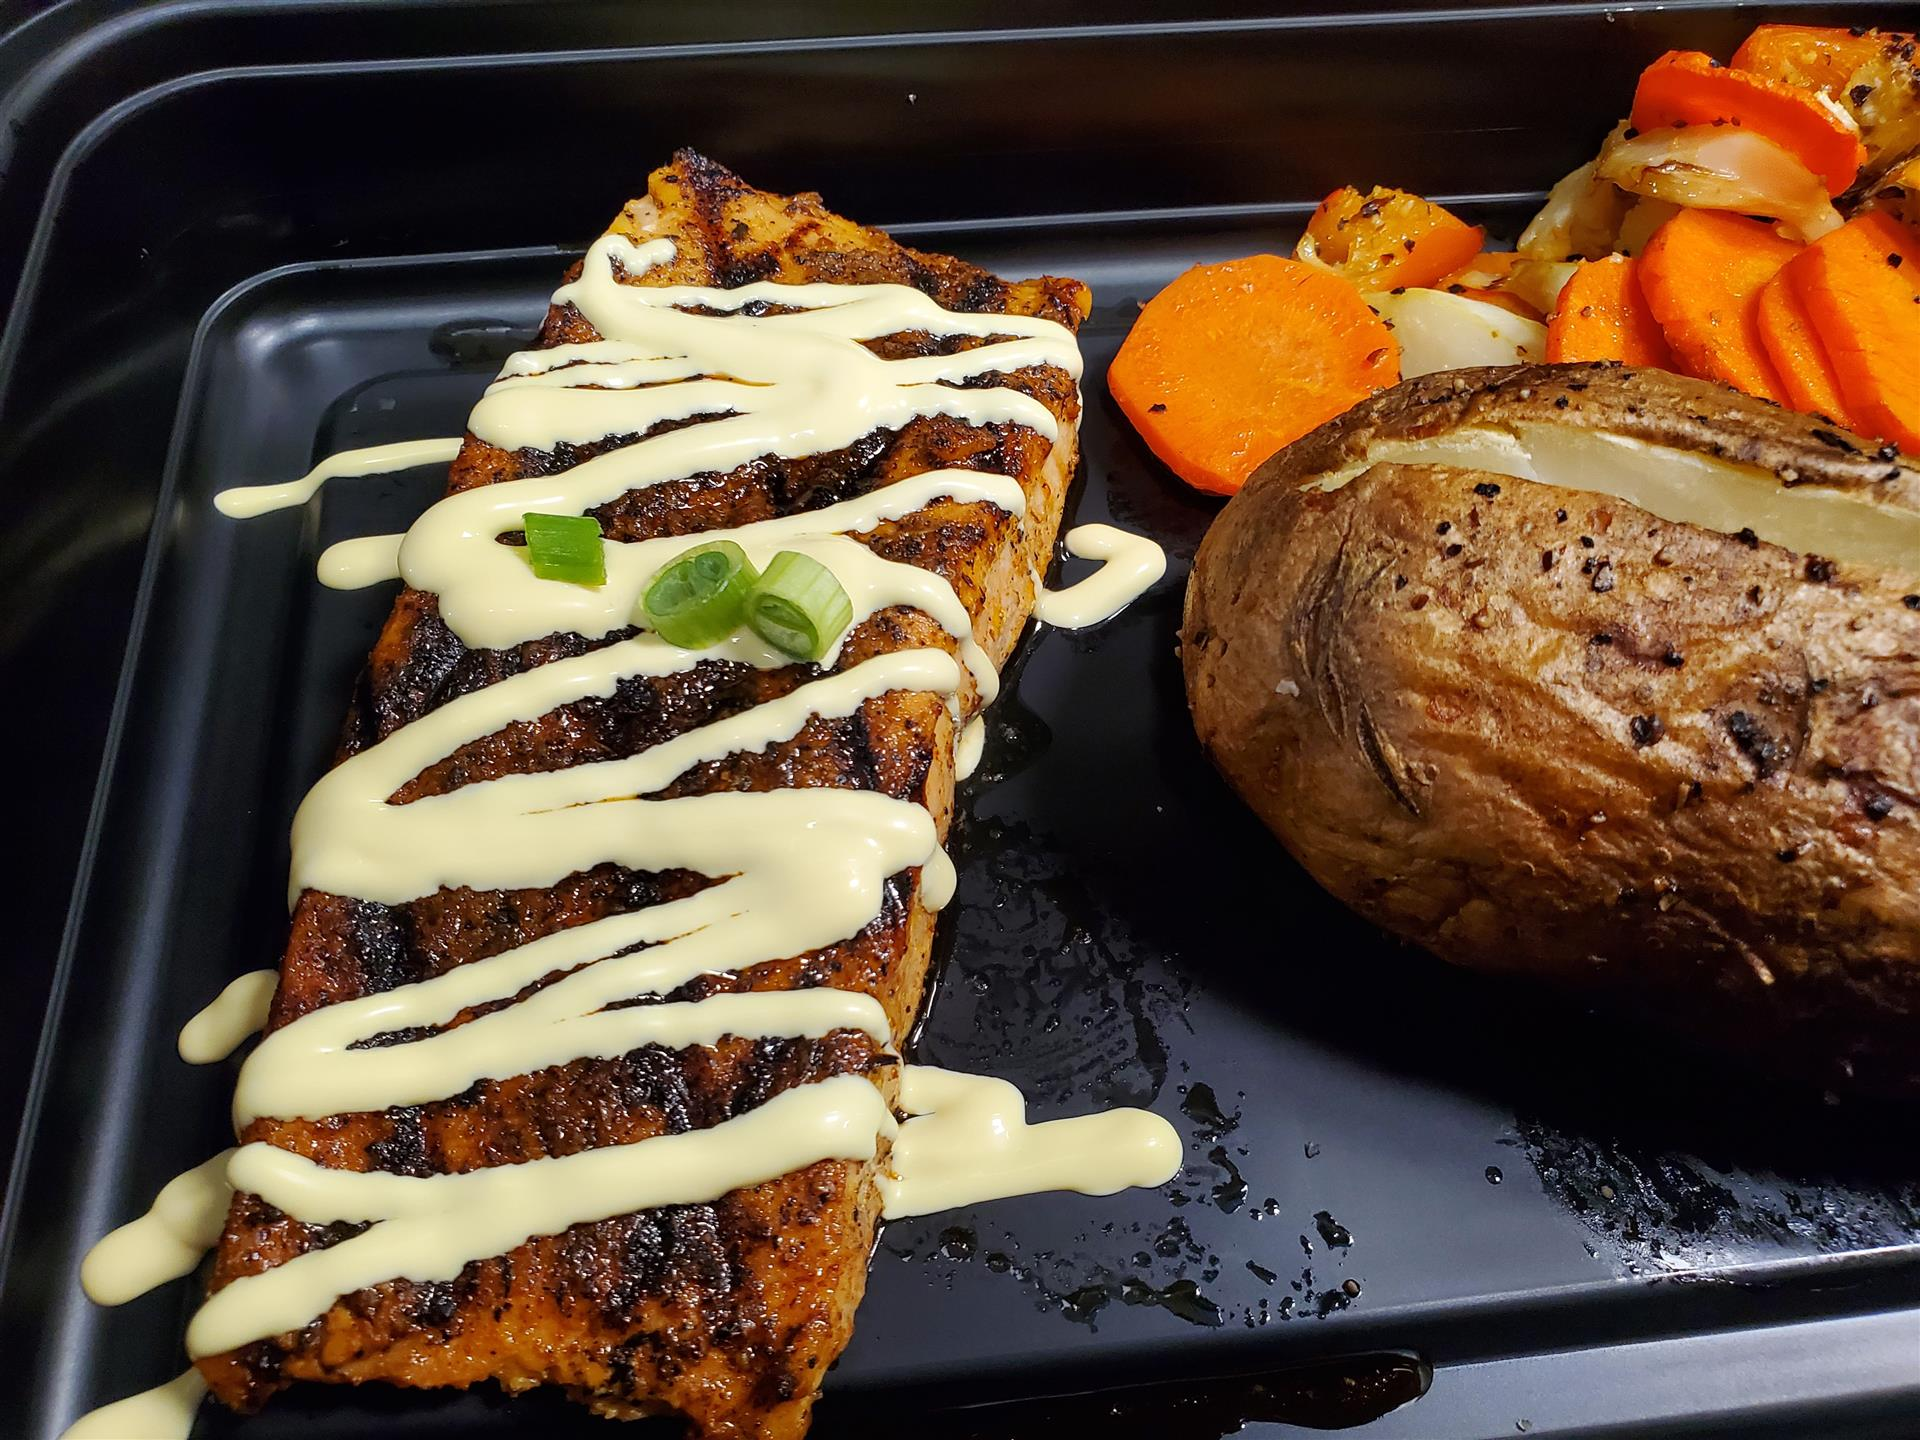 grilled salmon topped with aioli, baked potato and roasted veggies on the side